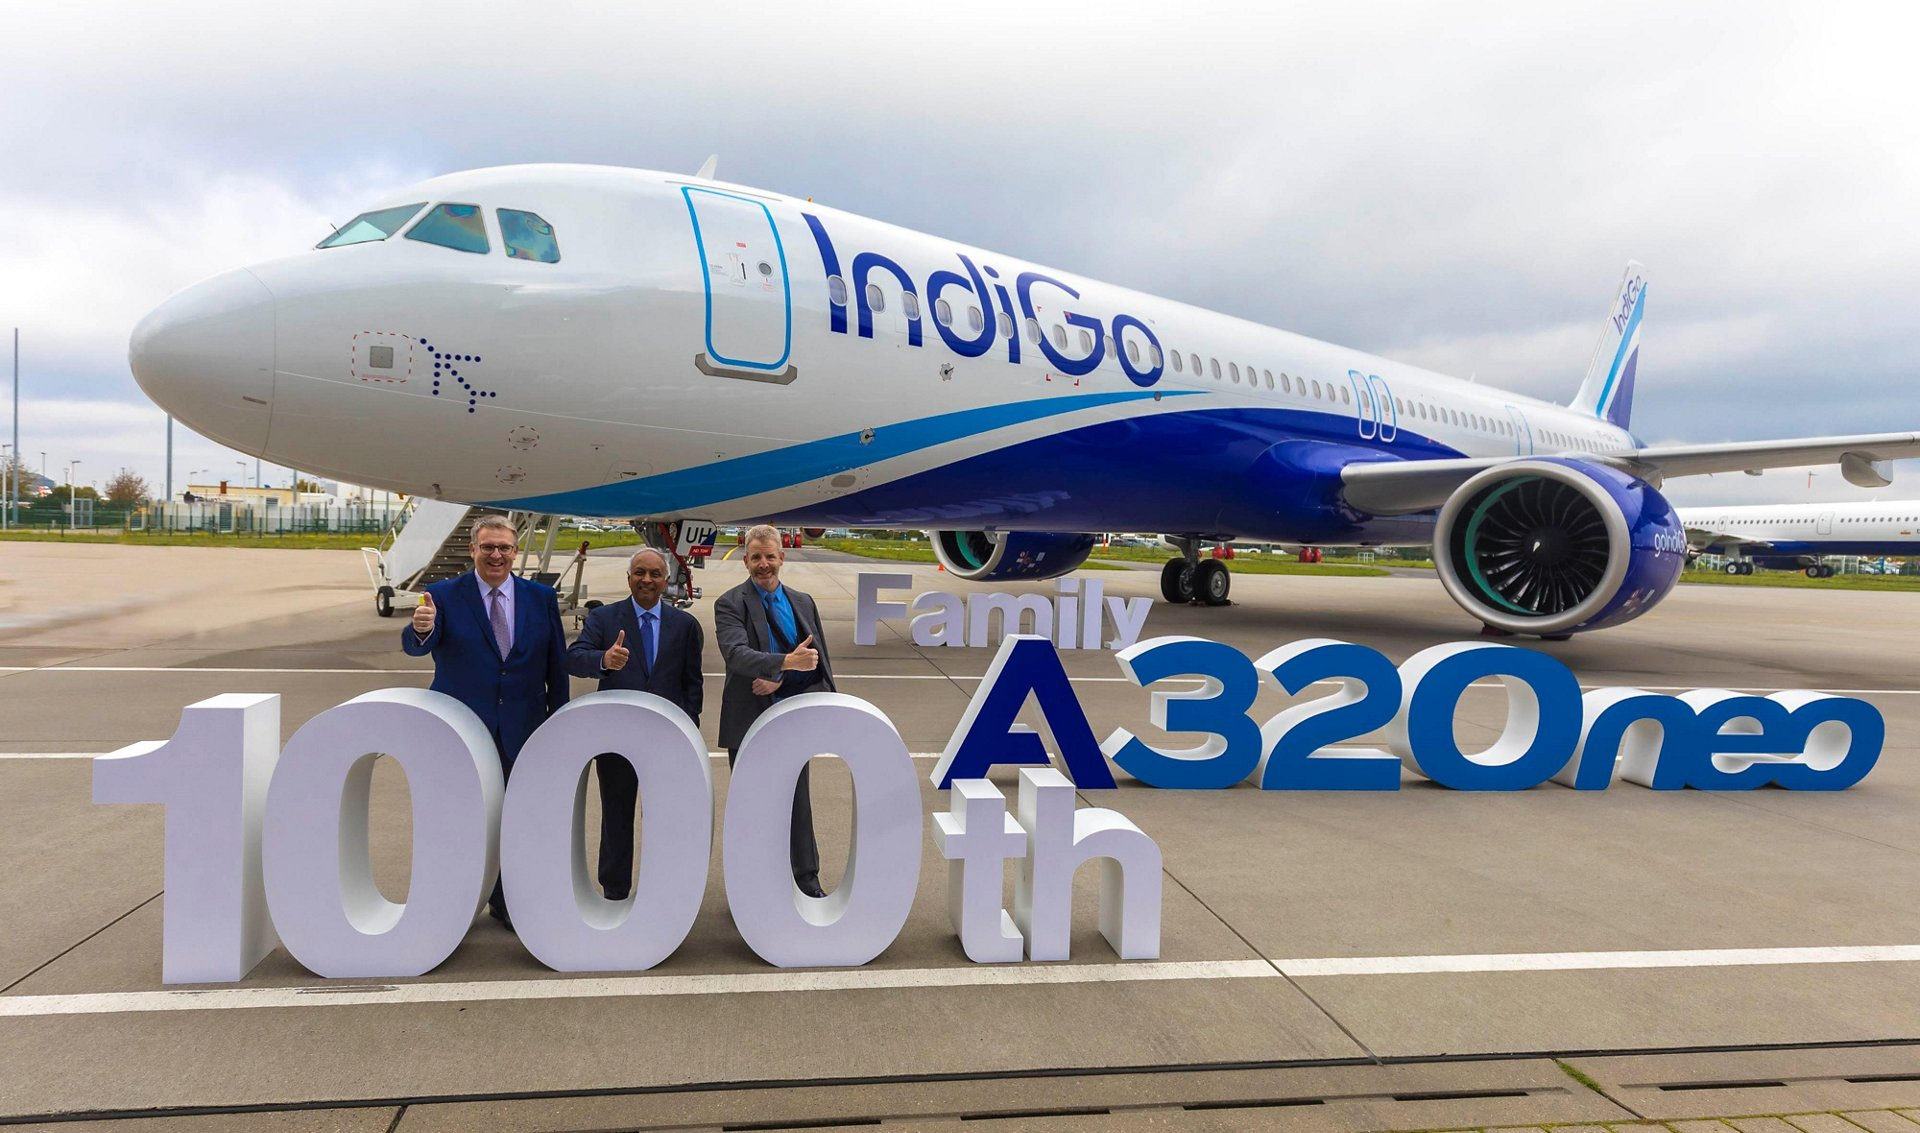 Airbus delivered its 1,000th A320neo Family aircraft – an A321neo provided to Indian airline IndiGo – in October 2019; marking the handover was (from left to right): Michael Menking, Head of A320 Family Programme, Airbus; Rono Dutta, Chief Executive Officer, IndiGo; and Michael Culhane, Senior Vice President New Aircraft, CDB Aviation Lease Finance